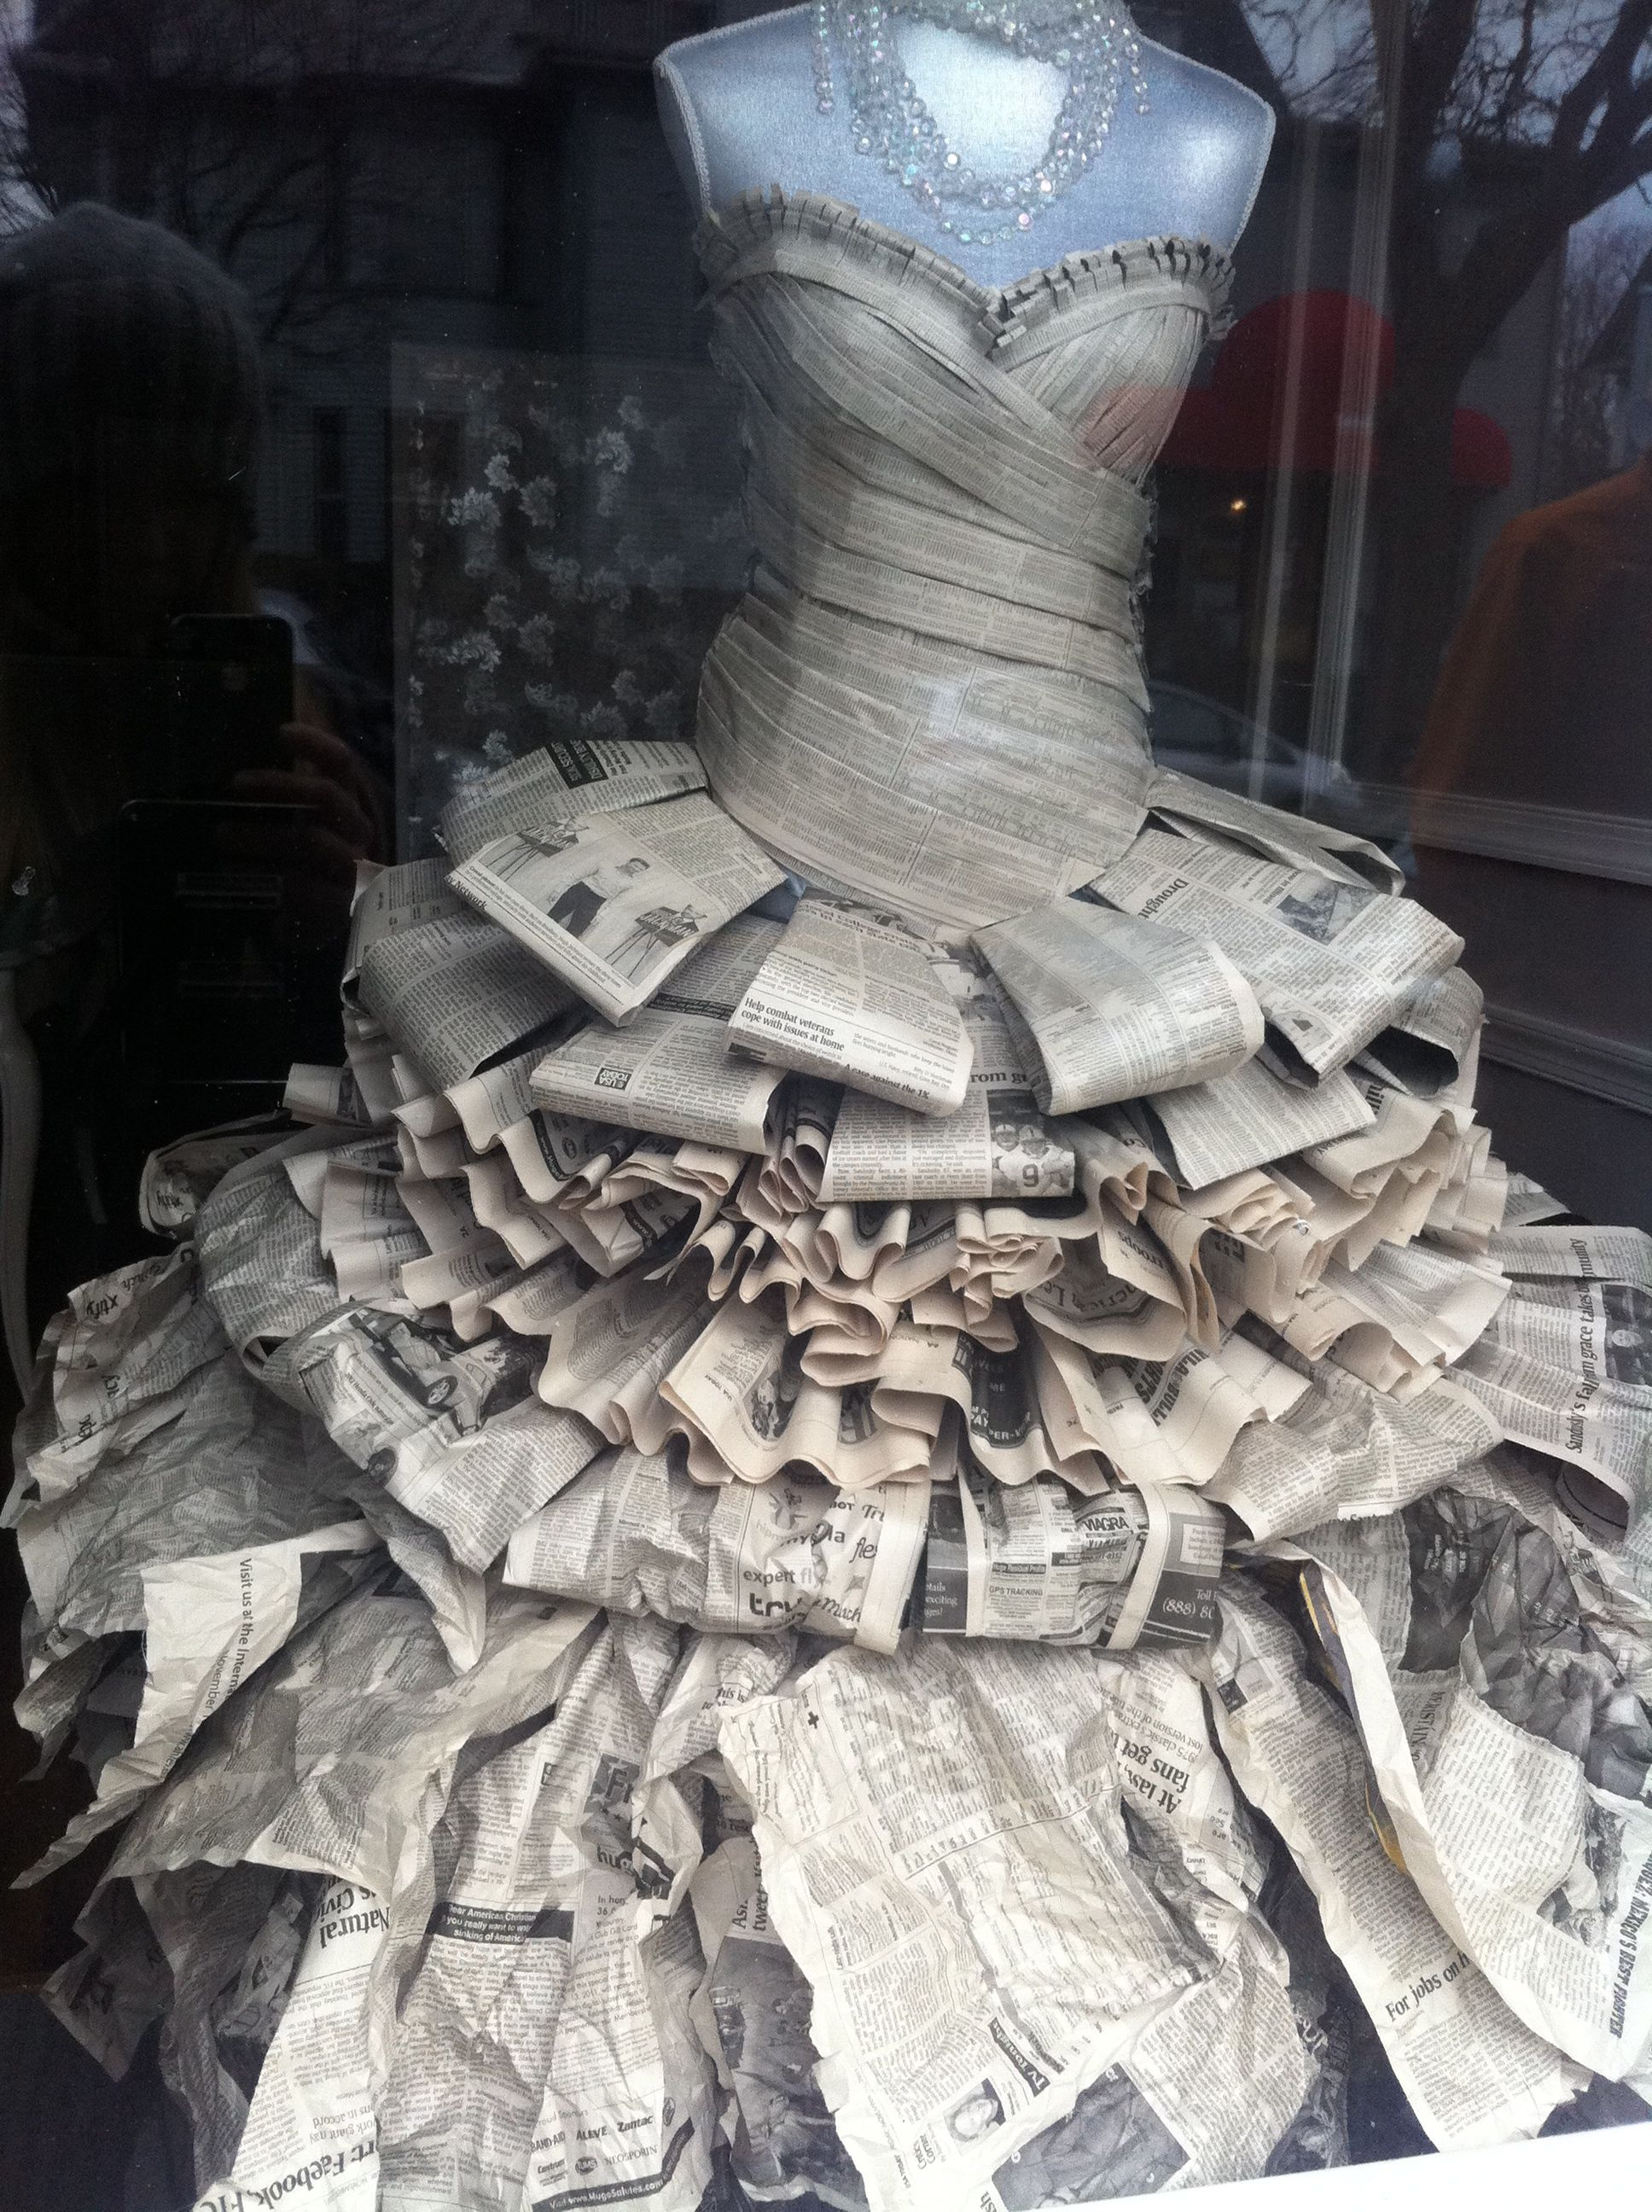 Beautiful Dress Made Out Of Newspaper! Wow